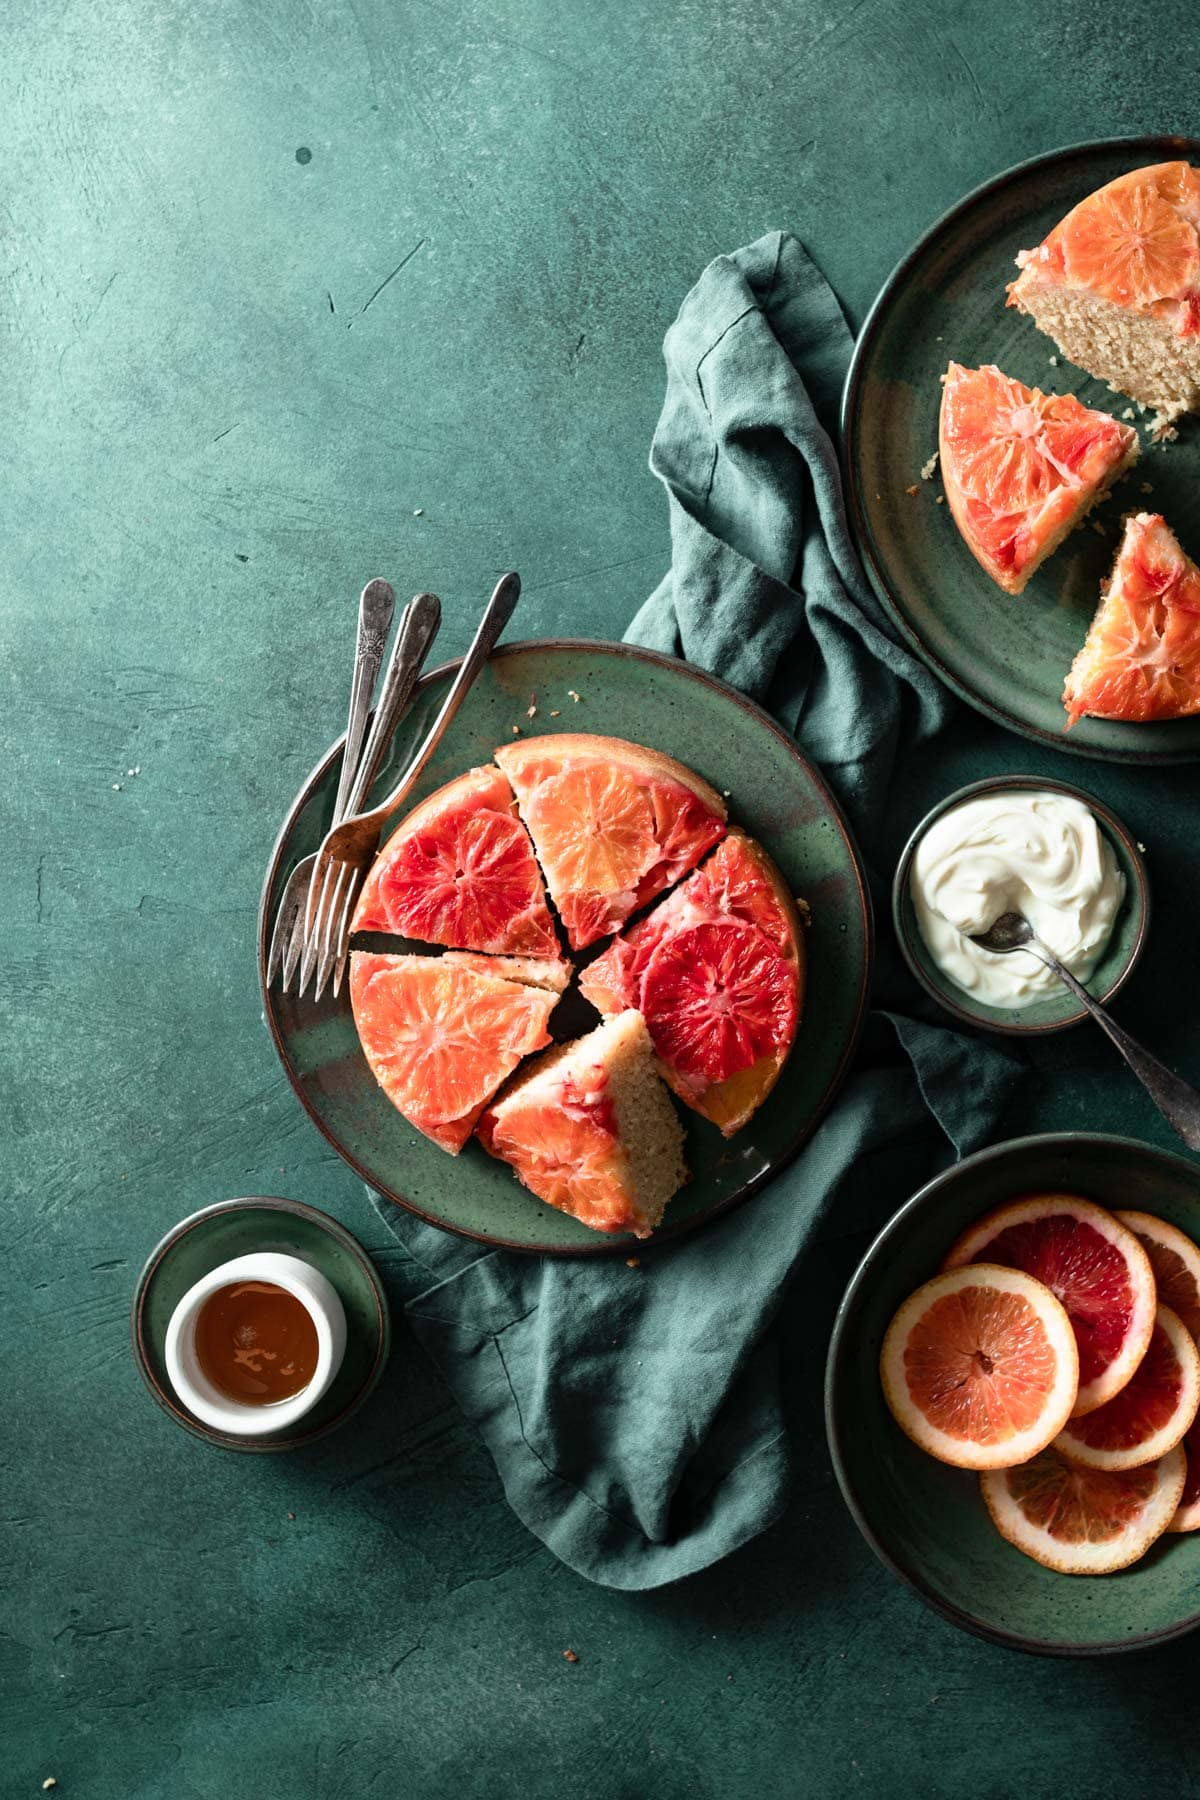 Blood orange upside down cakes with whipped cream and honey.